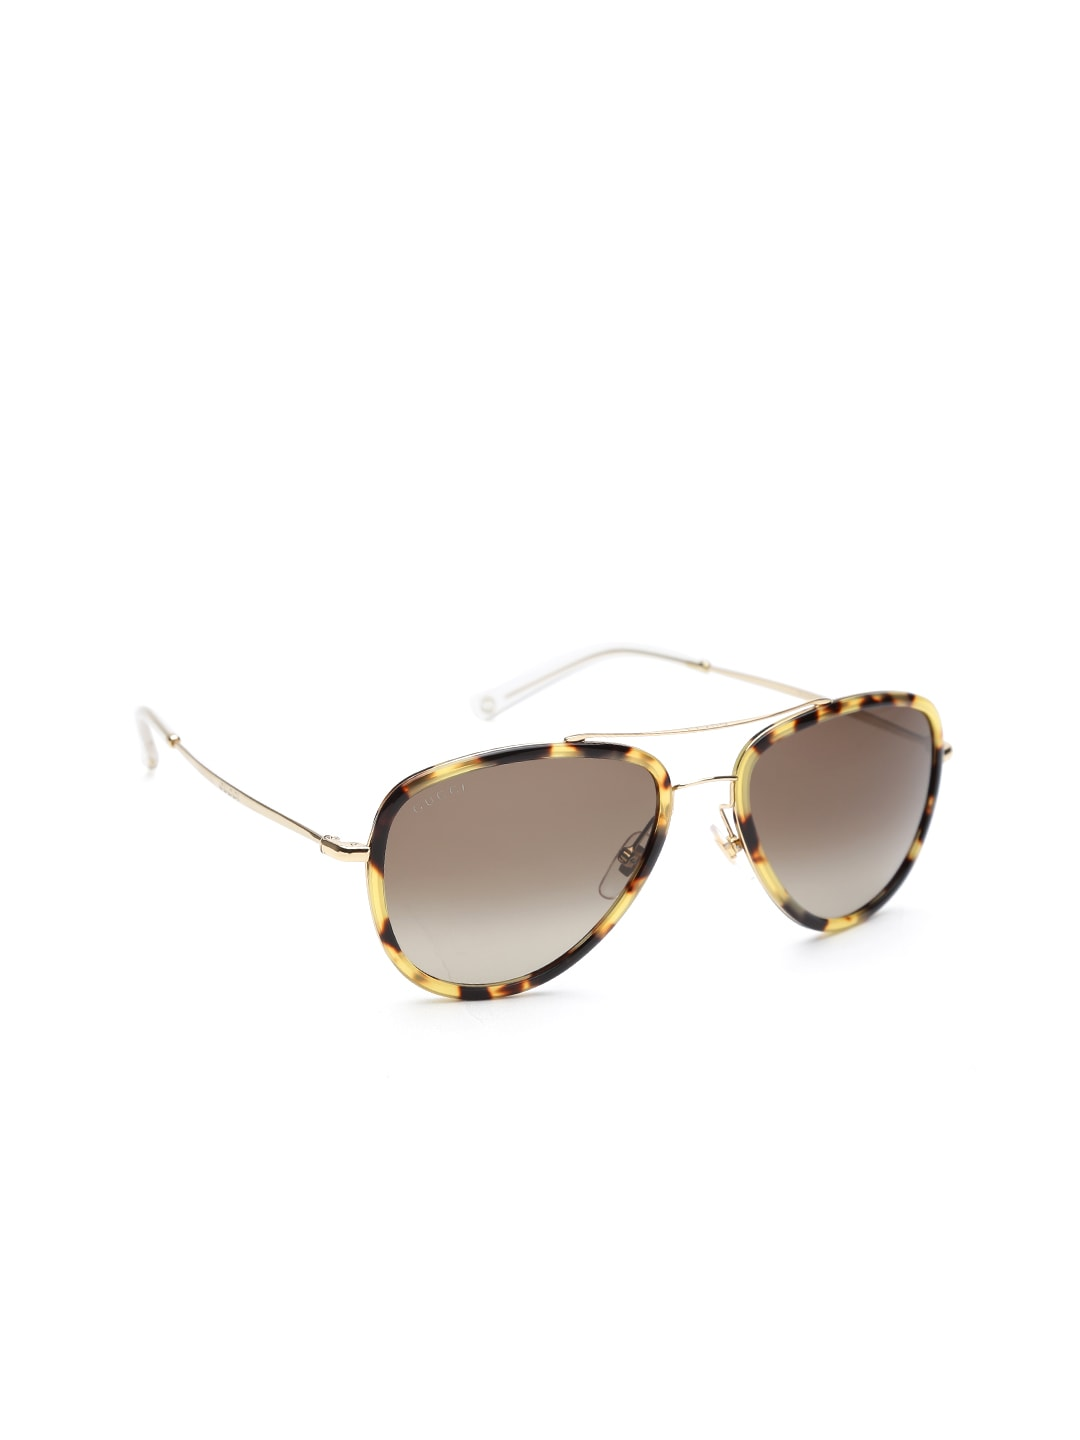 f9a30eefc20aa Gucci myn1443727 Unisex Printed Aviator Sunglasses Gg 2245 N S H81ha- Price  in India